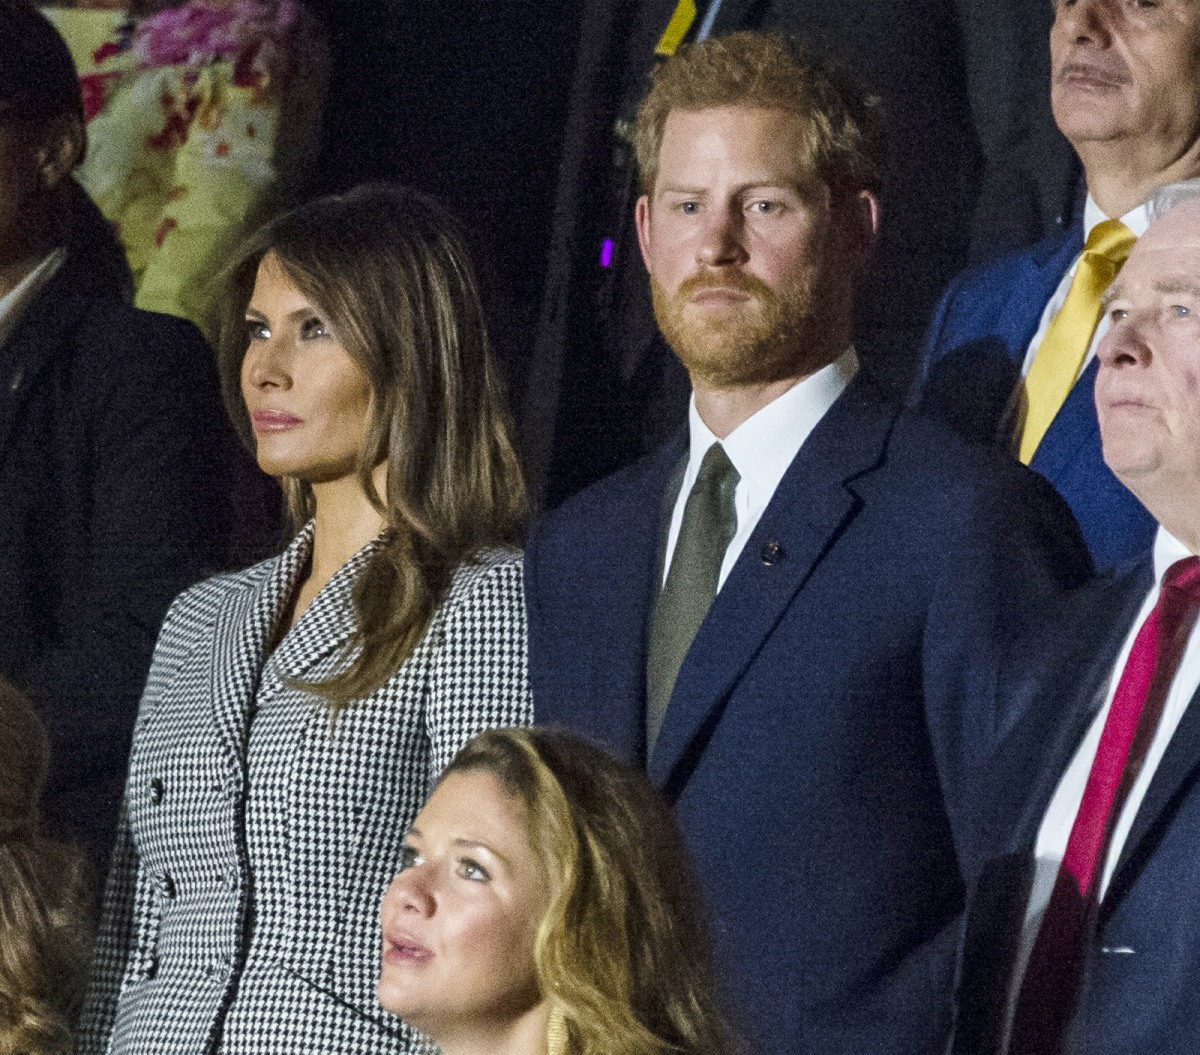 Prince Harry didn't sit with Meghan Markle at the opening of the Invictus Games